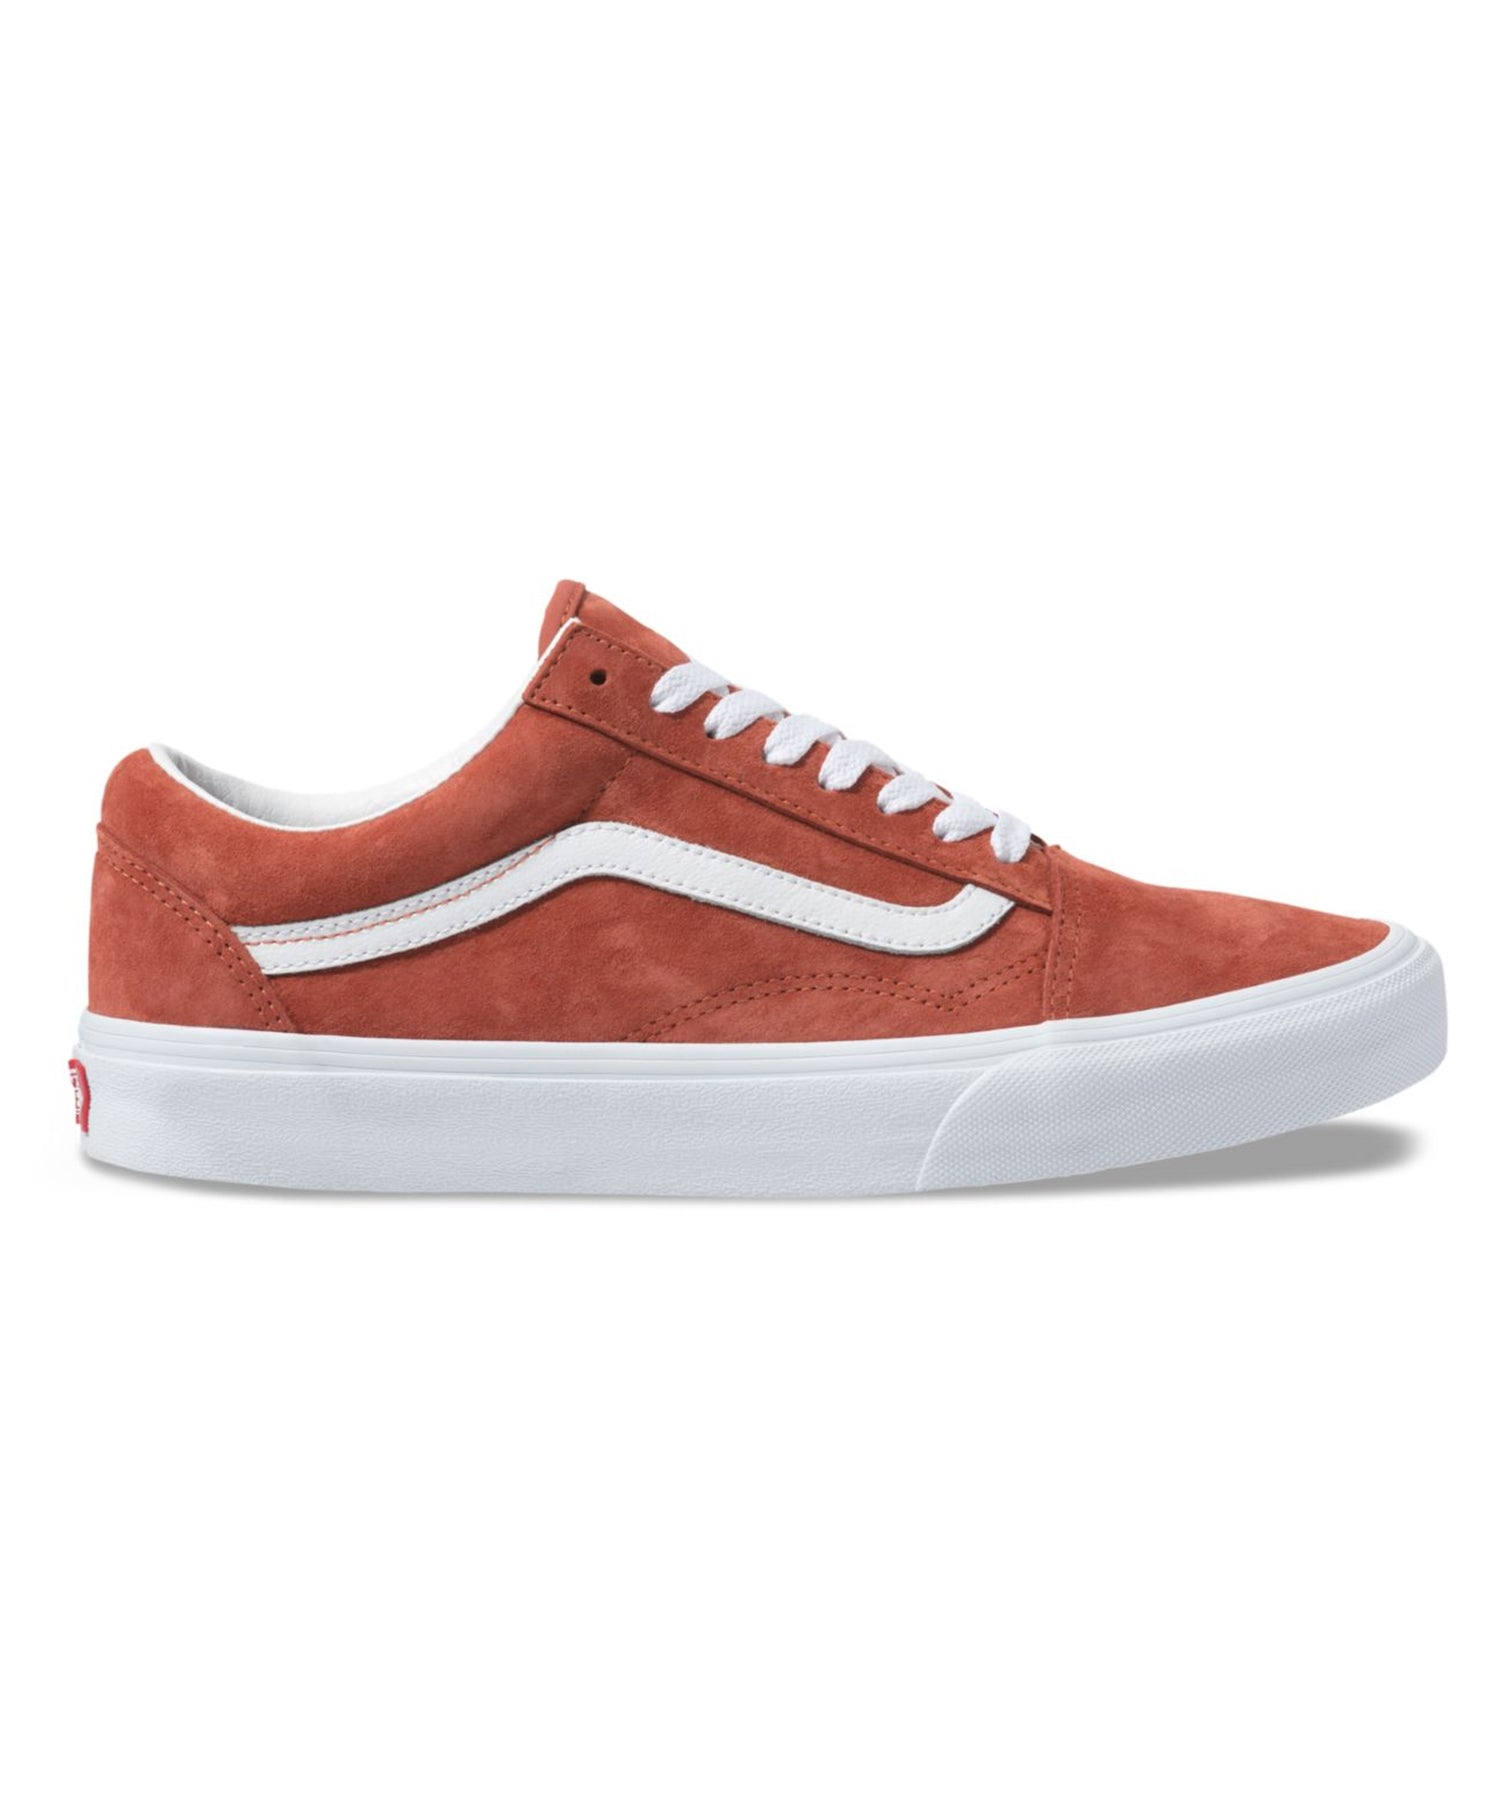 Vans Pig Suede Old Skool in Burnt Brick